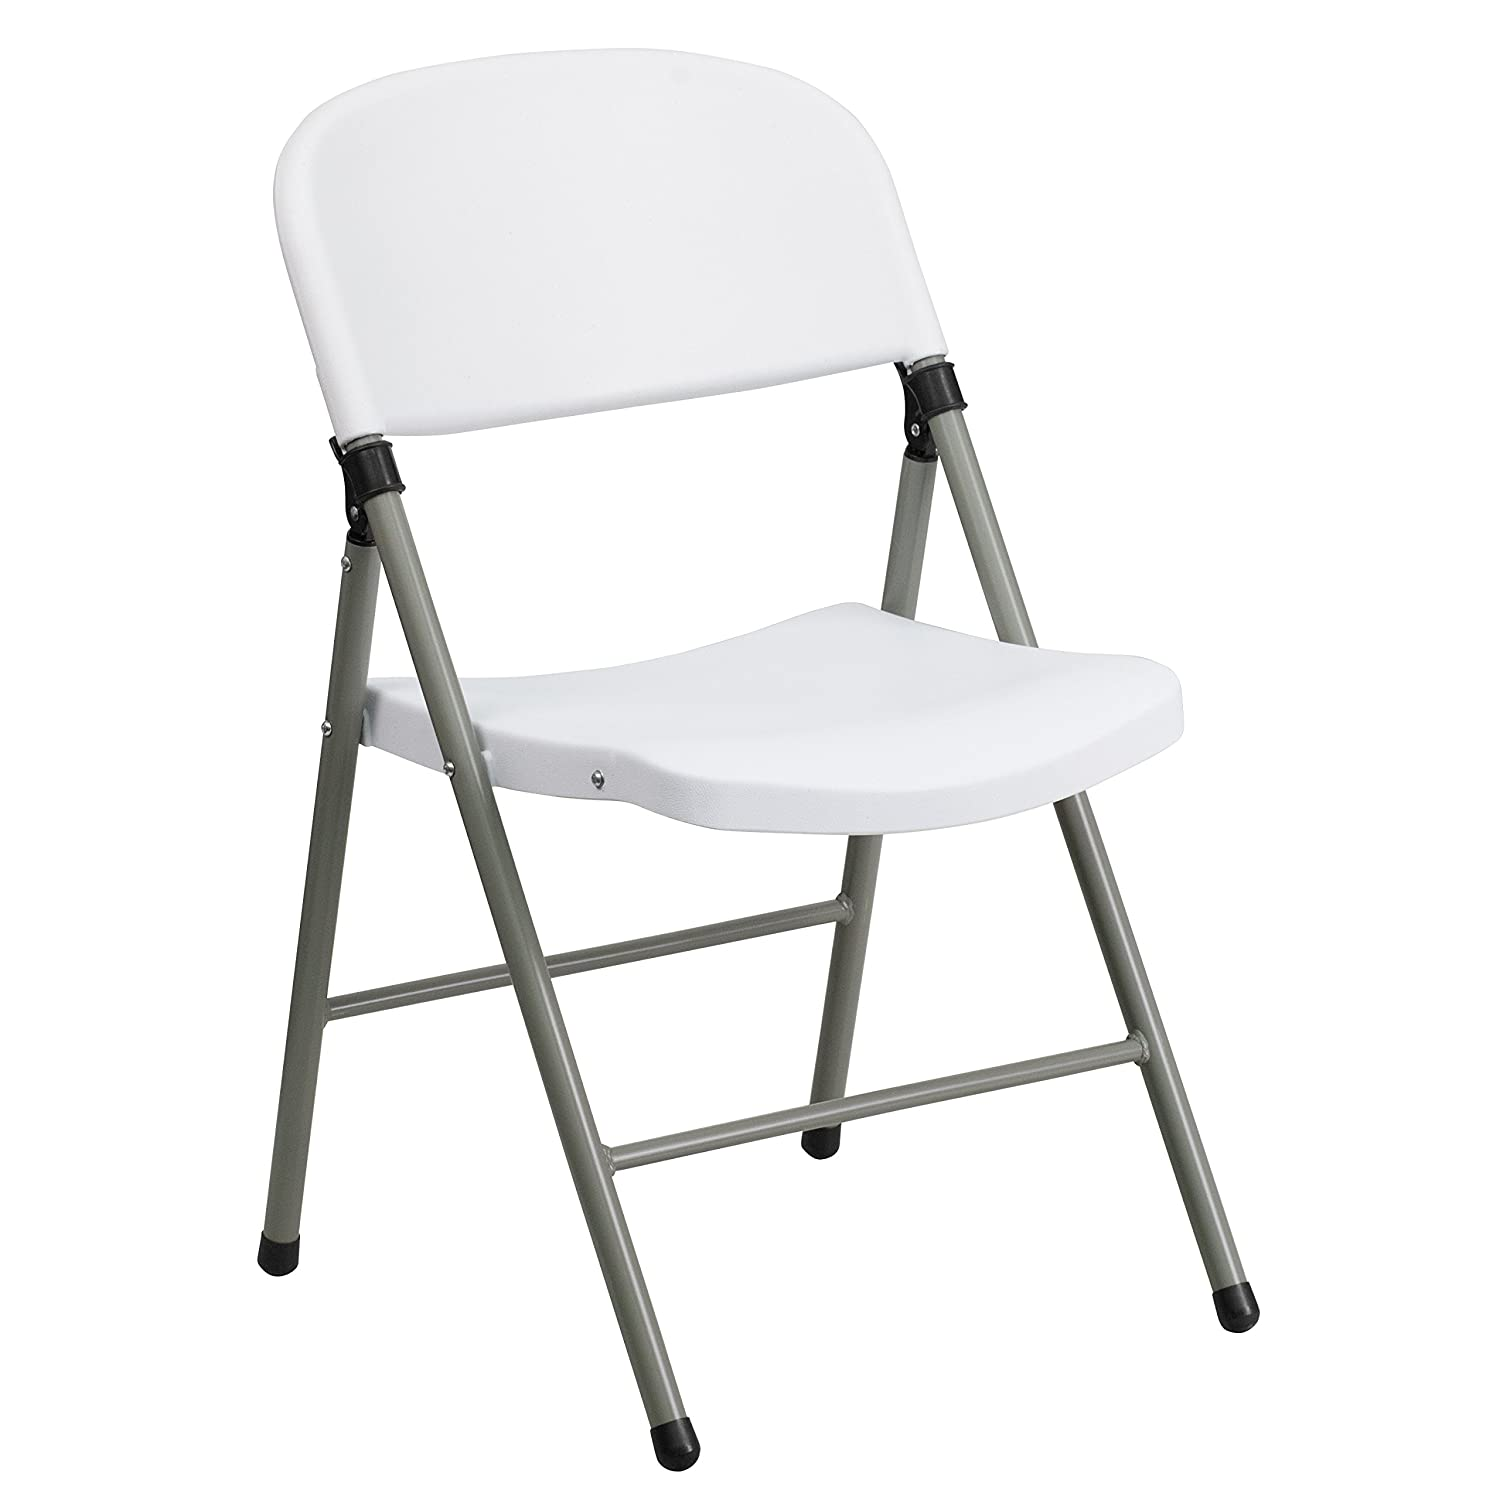 Flash Furniture 6 Pk. HERCULES Series 330 lb. Capacity White Plastic Folding Chair with Gray Frame